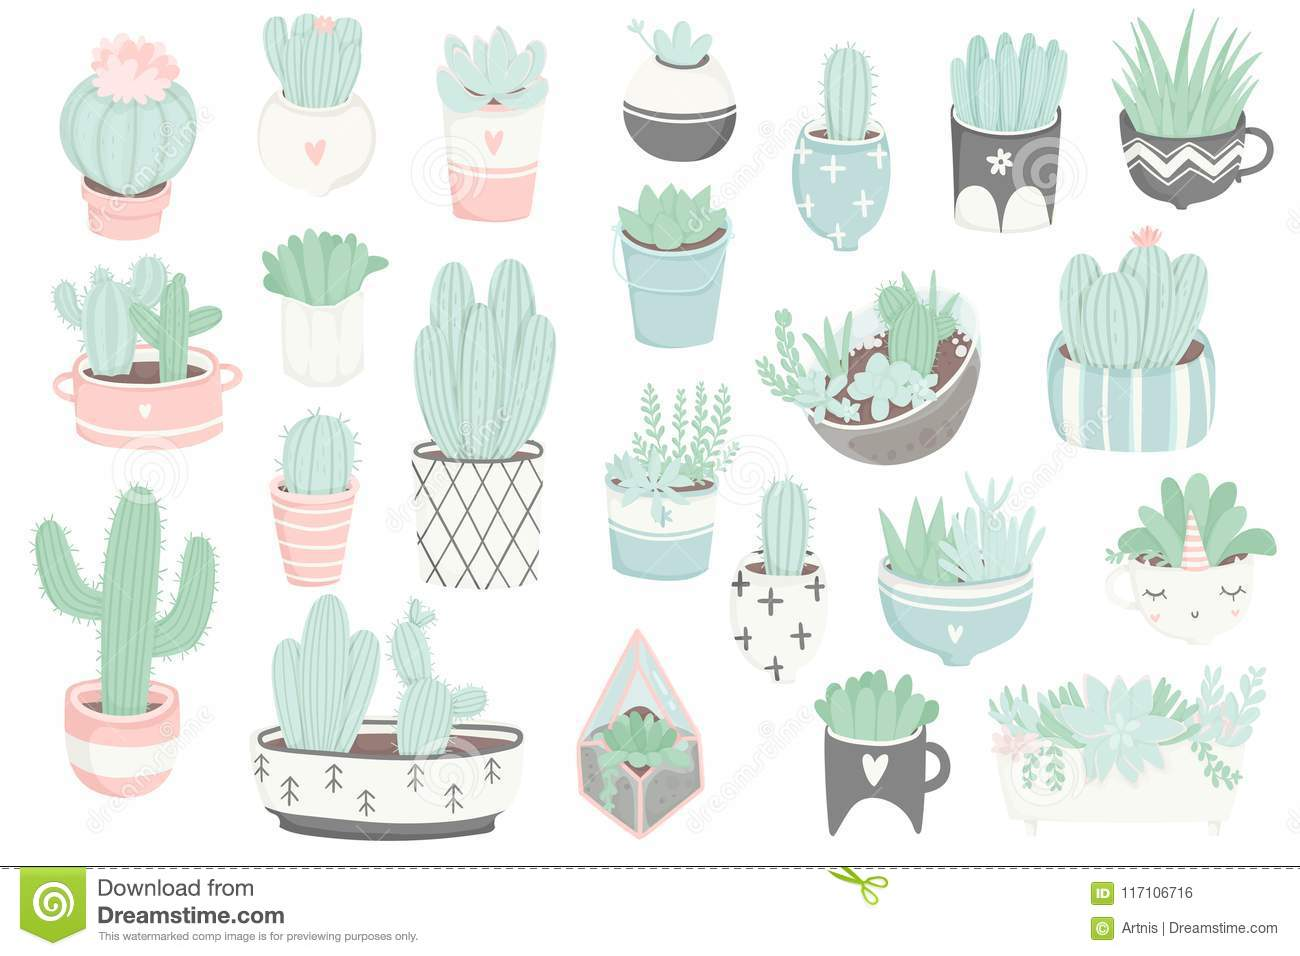 Cute Summer Sticker Set With Cacti And Succulents Stock Vector Illustration Of Design Pastel 117106716